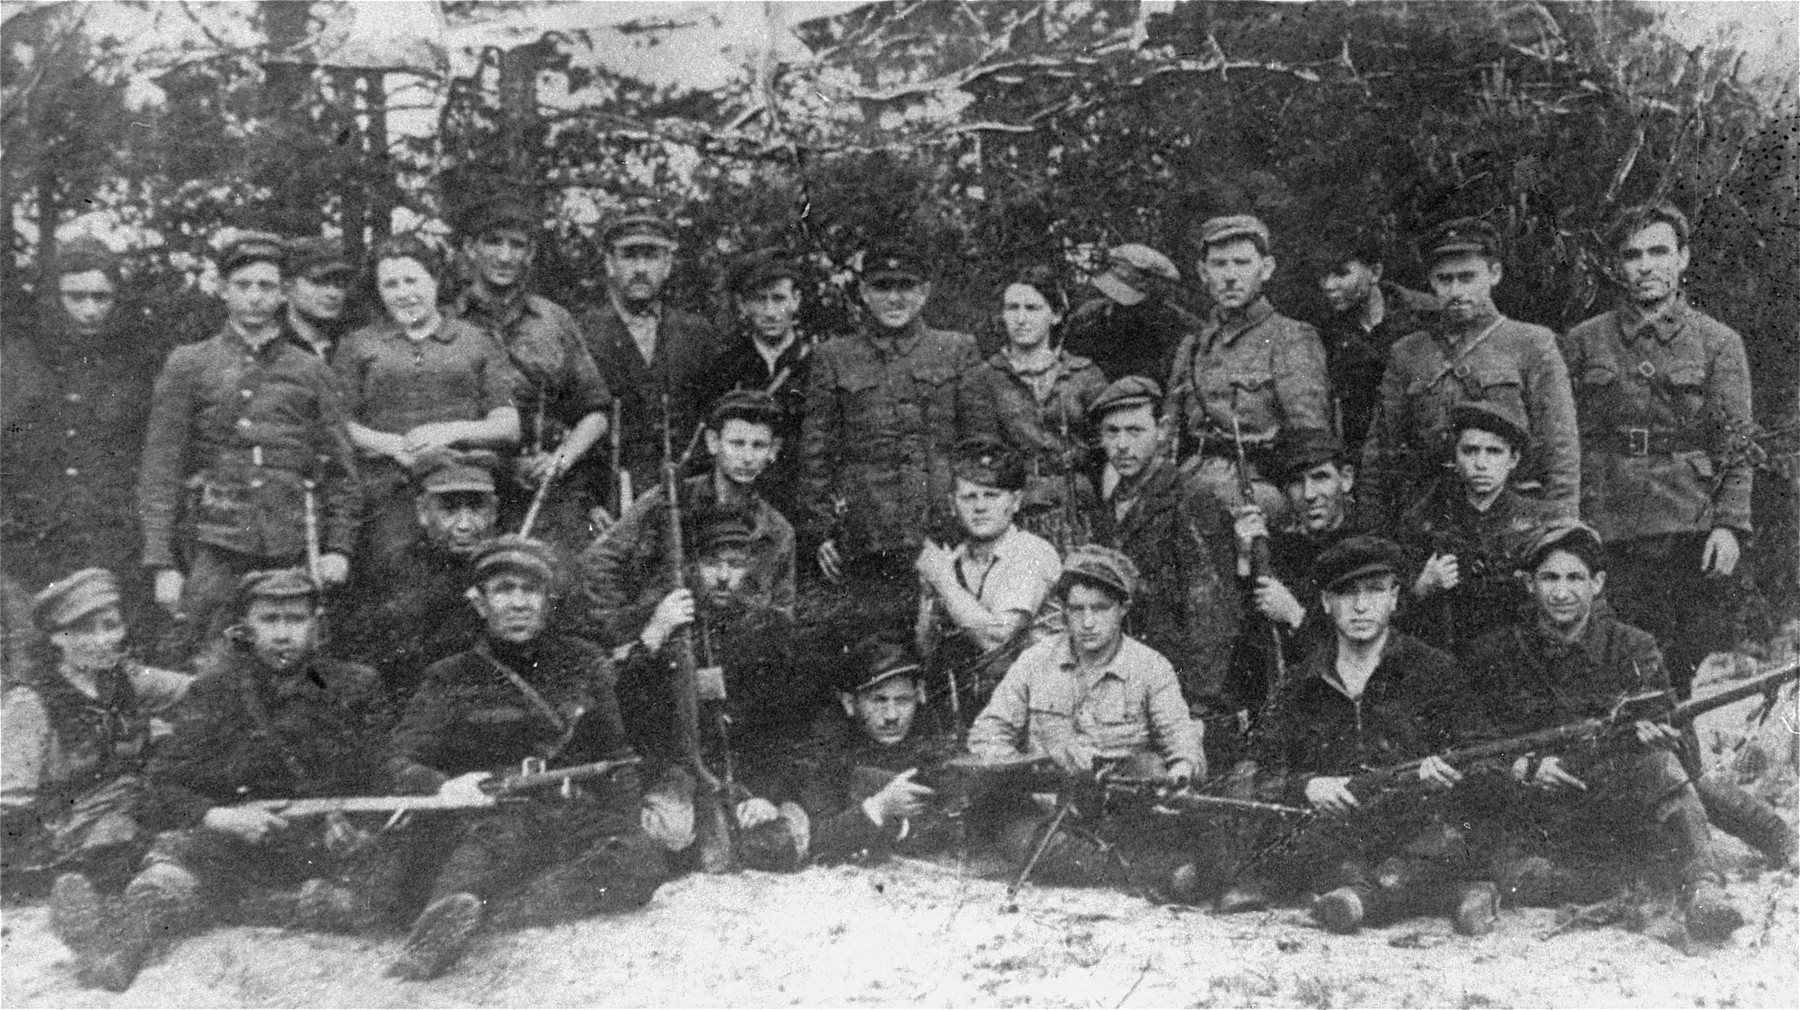 A group of partisans from various fighting units including the Bielski group and escapees from the Mir Ghetto on guard duty at an airstrip in the Naliboki Forest.  Among those pictured is Commander Nowiczki, standing first on the right; Joseph Kozlowski (now Kazlow), top row, second from right;  Solomon Golanski is pictured at the bottom right; Josef Kessler is in the center wearing a short white sleeve shirt;  [Behind him might be Hershl Goldhamer; Seated in the center might be Esia Schorr (a cousin of the Bielskis)]; Standing second from the left is  Zeev Schriber; Sitting third from the left (below the standing woman partisan ) is Berkowitz; both from Mir Ghetto;  Gershon Seigel (b. 1922, Slonim) is standing third from the right.